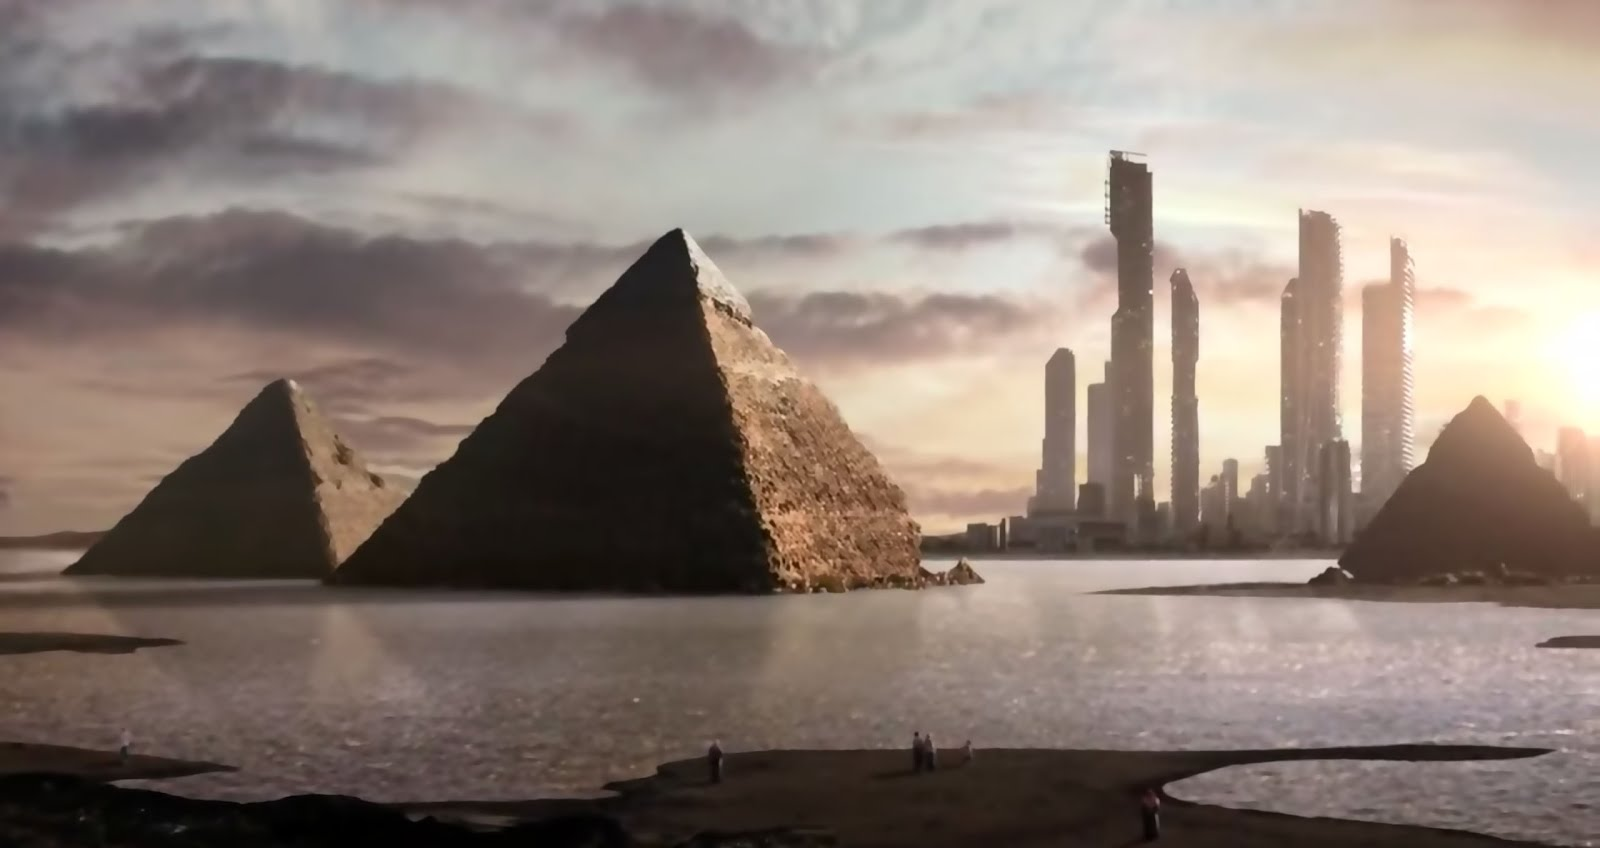 misinformation as the ultimate cause of dystopian civilization The film takes ideas from dystopian films of the past and wraps them up in kid-friendly packaging  the road warrior reveals that a global energy crisis as the cause of society's decline .